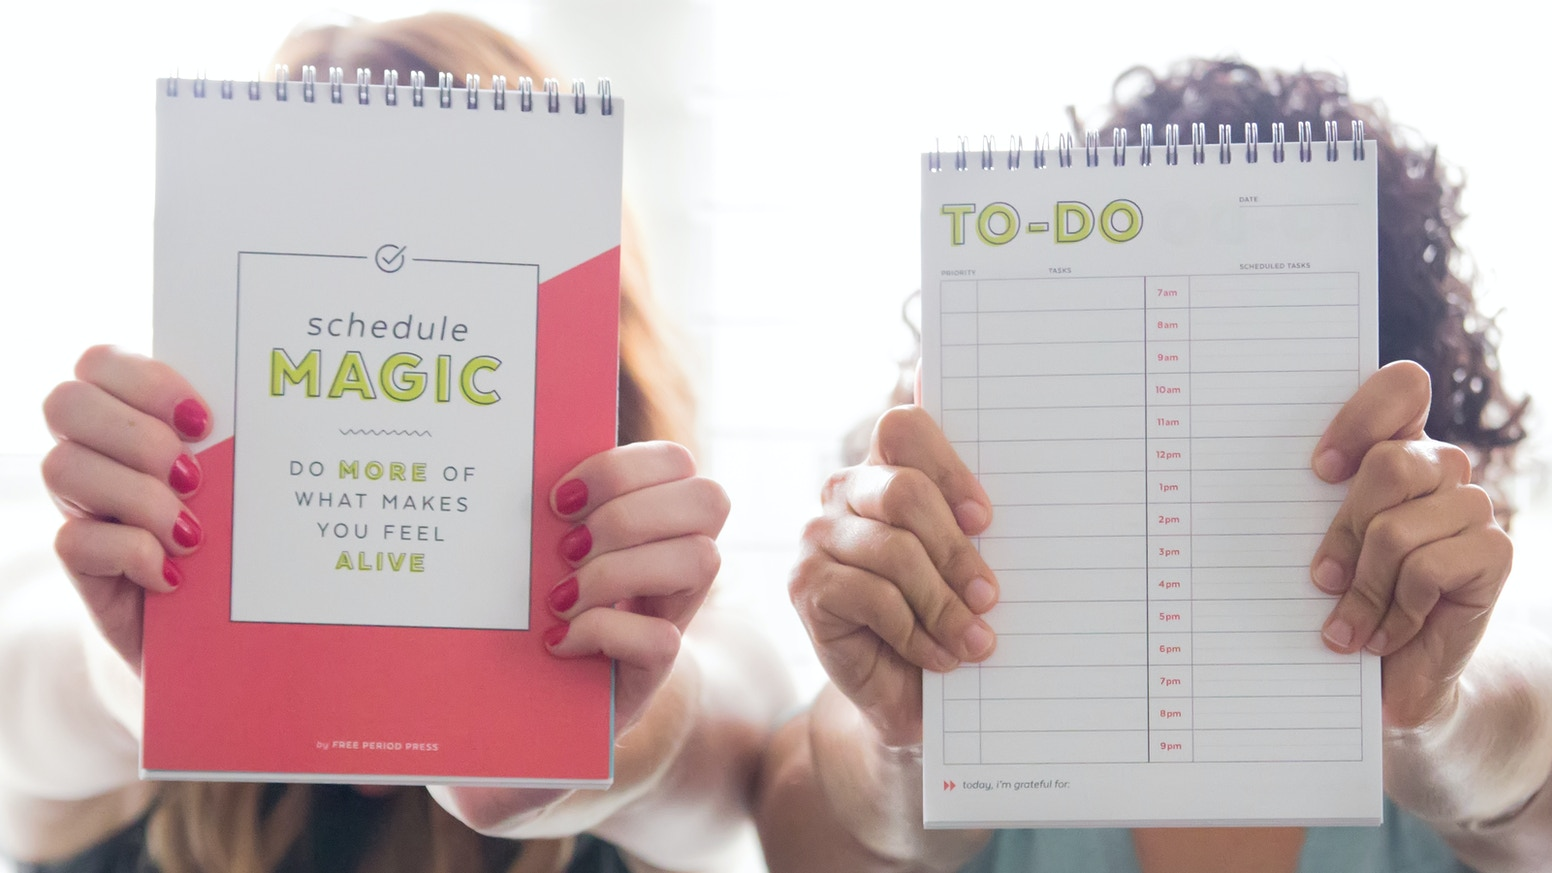 Stay focused by prioritizing and scheduling the tasks that will move the needle towards your goals.